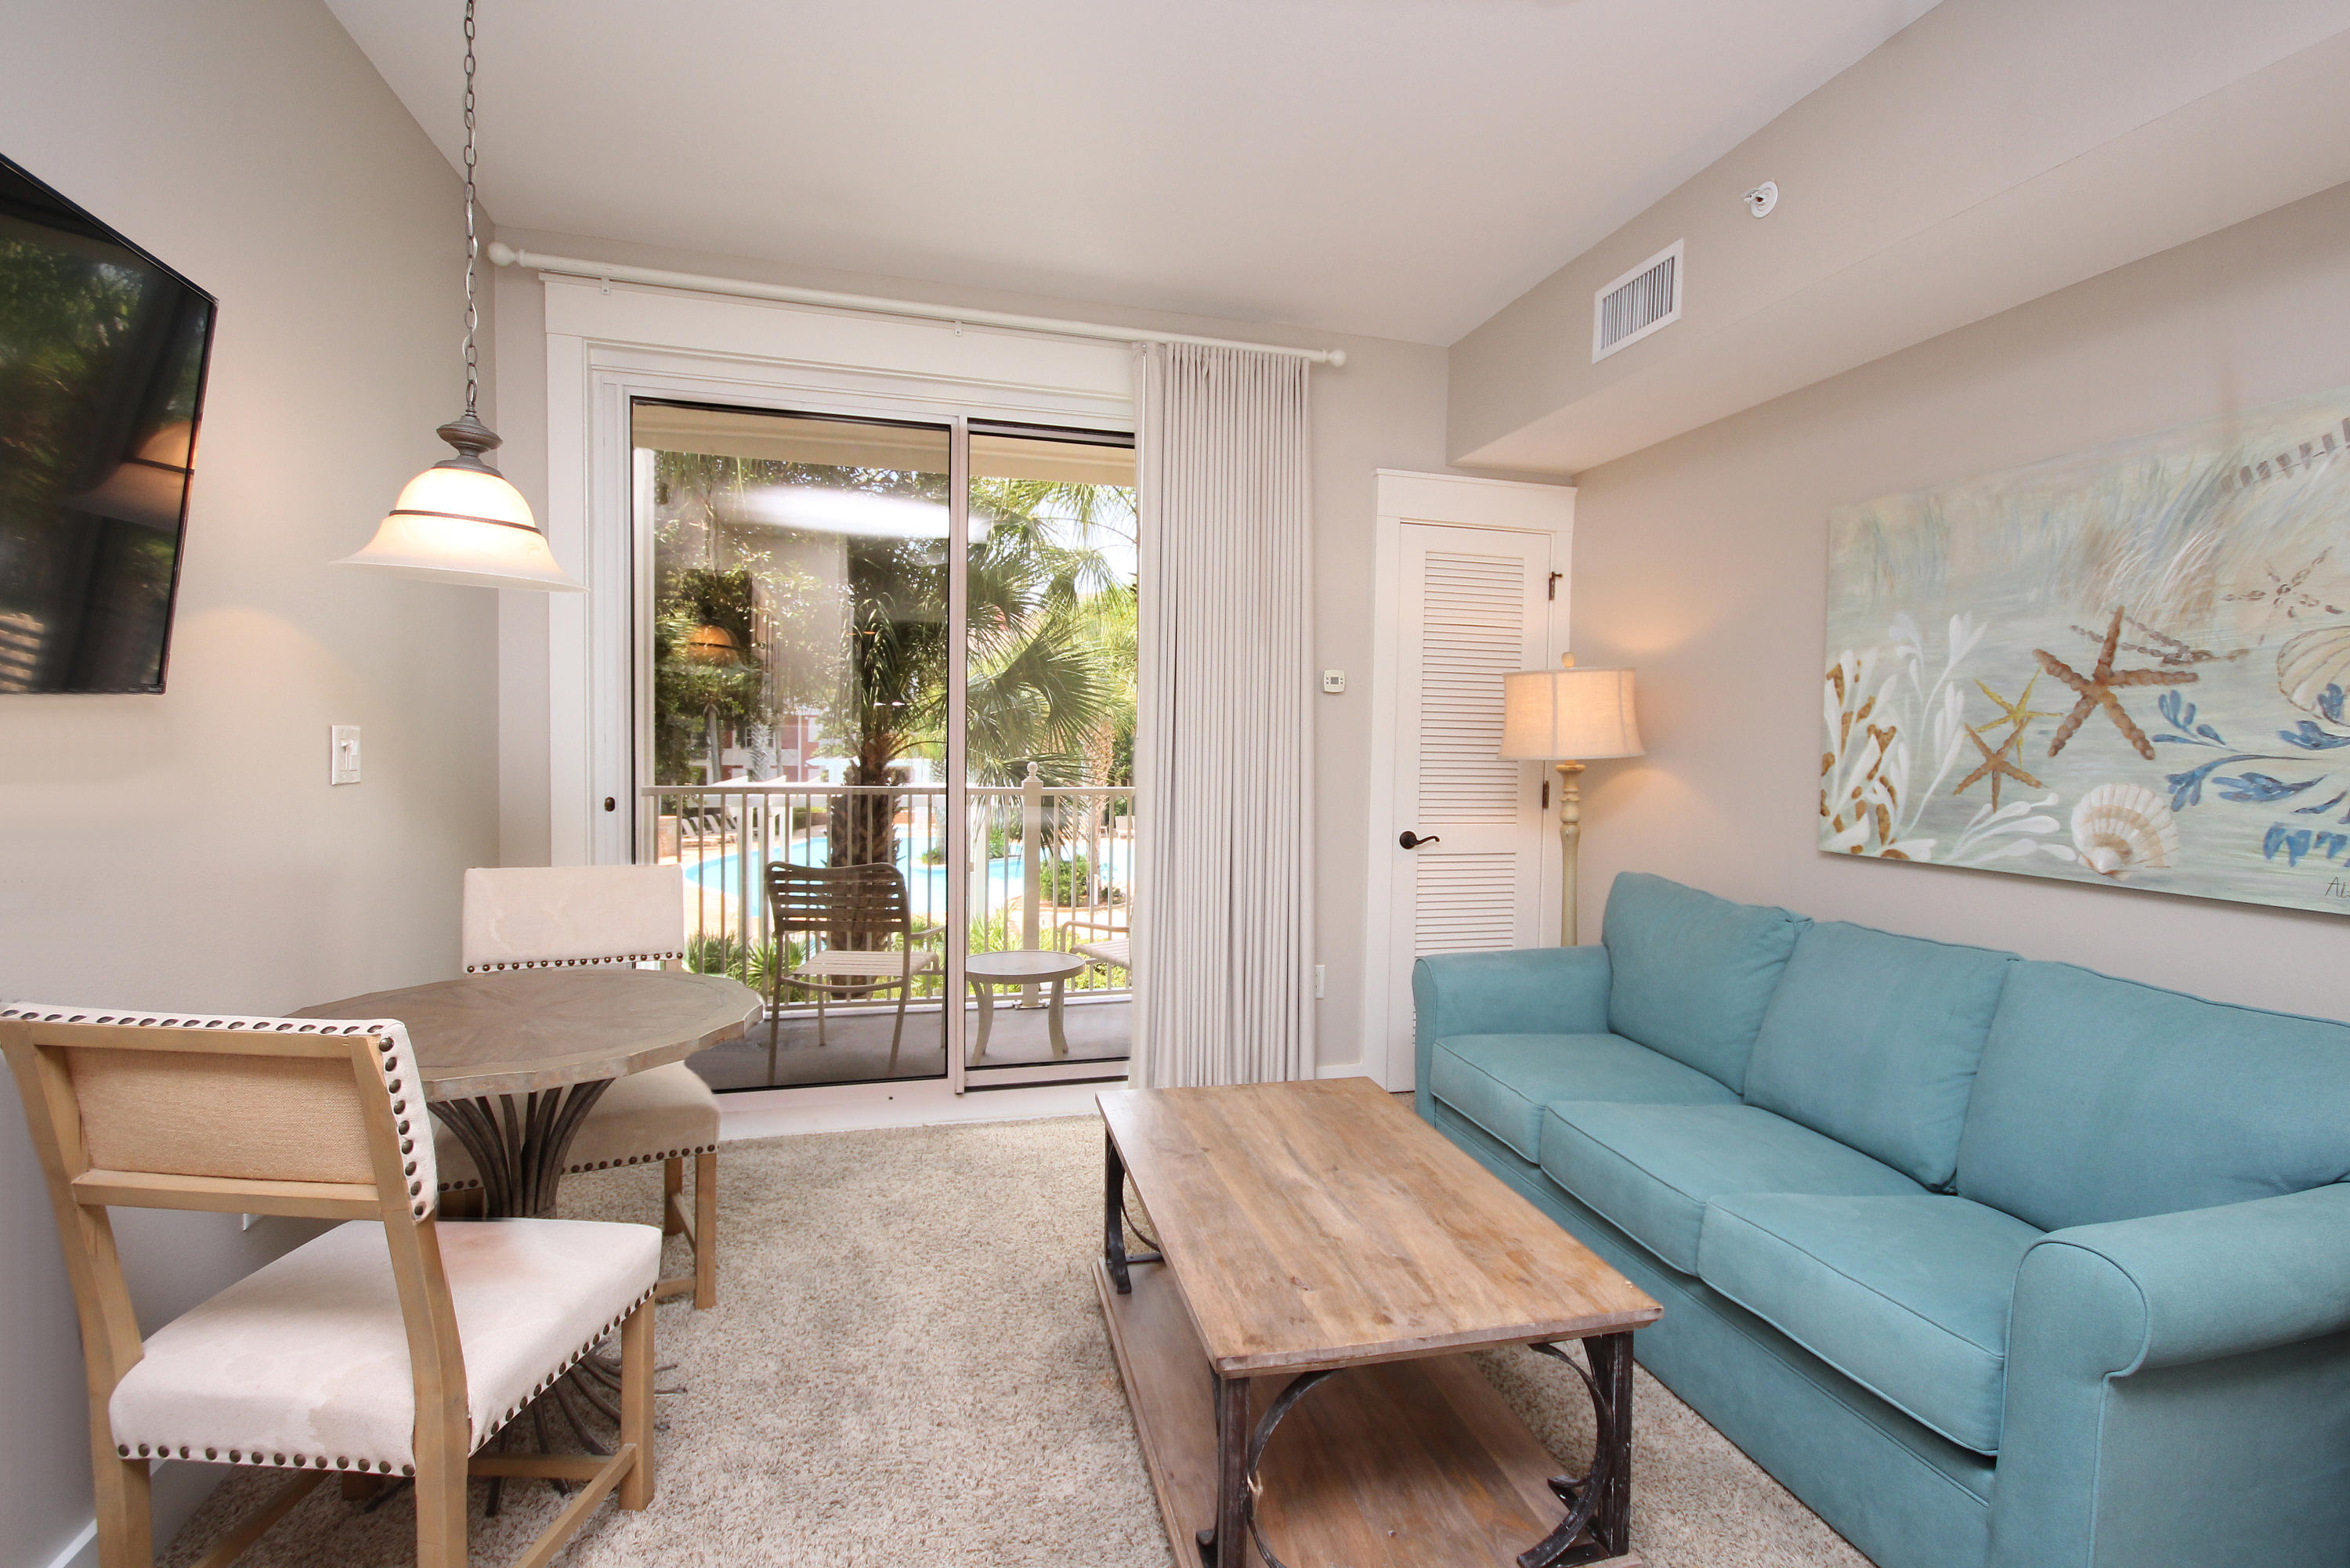 """Overlooking the amenity terrace and ''A'' rated on the Sandestin Rental program, this charming 4th floor furnished studio would make a great weekend getaway or rental investment. Gateway Owners and Guests enjoy the private exclusive resort style pool, hot tub, fitness center, beautiful lawn, grilling areas, outdoor fireplaces, and spacious dog walks.  In addition, you are just steps from the Village at Baytowne Wharf, a charming pedestrian village with events, shopping, dining, family entertainment and nightlife.  Sandestin also offers miles of sandy white beaches and pristine bay front, four championship golf courses, a world-class tennis center with 15 courts, 4 resort swimming pools (and 15 private neighborhood pools), a 123-slip marina, a fully equipped and professionally staffed fitne center and spa, and meeting spaces....something for everyone!  Come to Play, Stay for Life!   As an introduction to the Sandestin lifestyle, we invite our new owners to explore amenities that make Sandestin special. The listing brokerage and seller(s) are presenting the buyer(s) of this property with (2) 90-minute rounds of Tennis court time, a golf foursome at one of our three championship courses, a round of golf for up to four (4) players and an invitation to """"Club Night"""" at the unrivaled Burnt Pine Golf Club."""